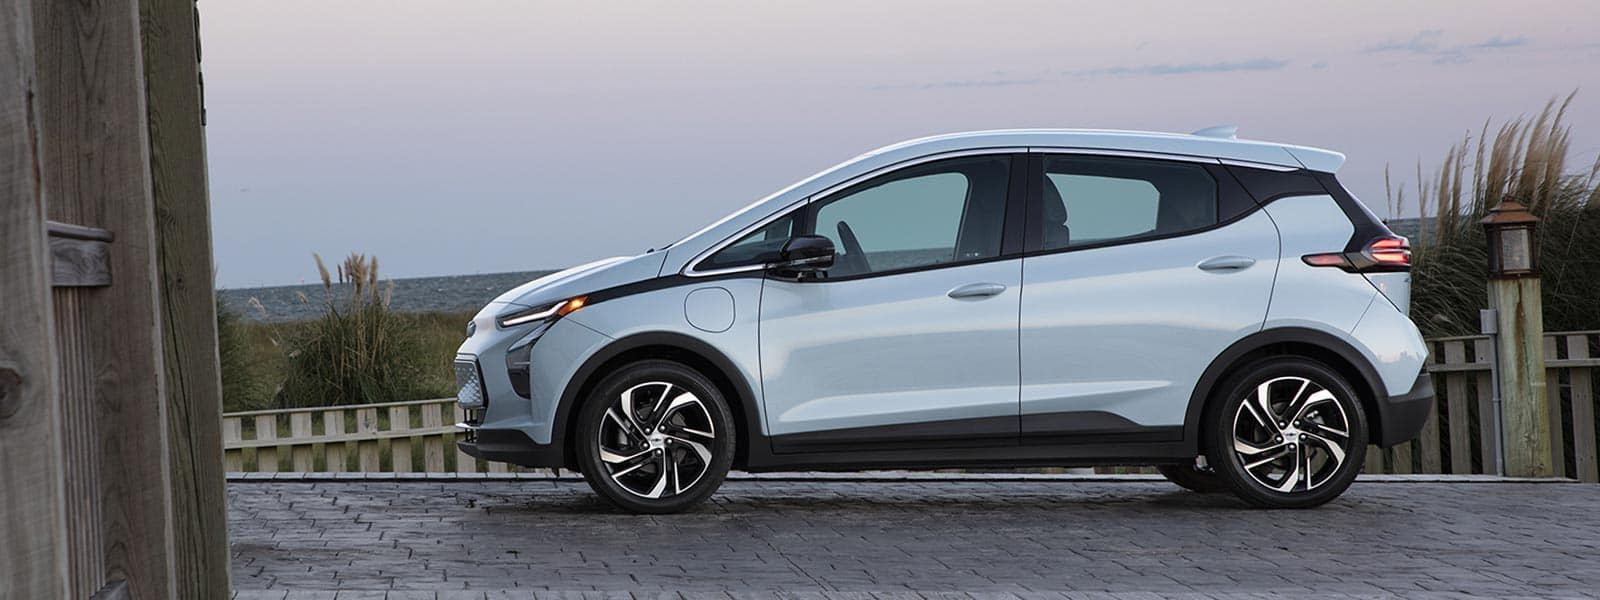 Finance or lease new 2022 Chevrolet Bolt EV in Thornhill ON